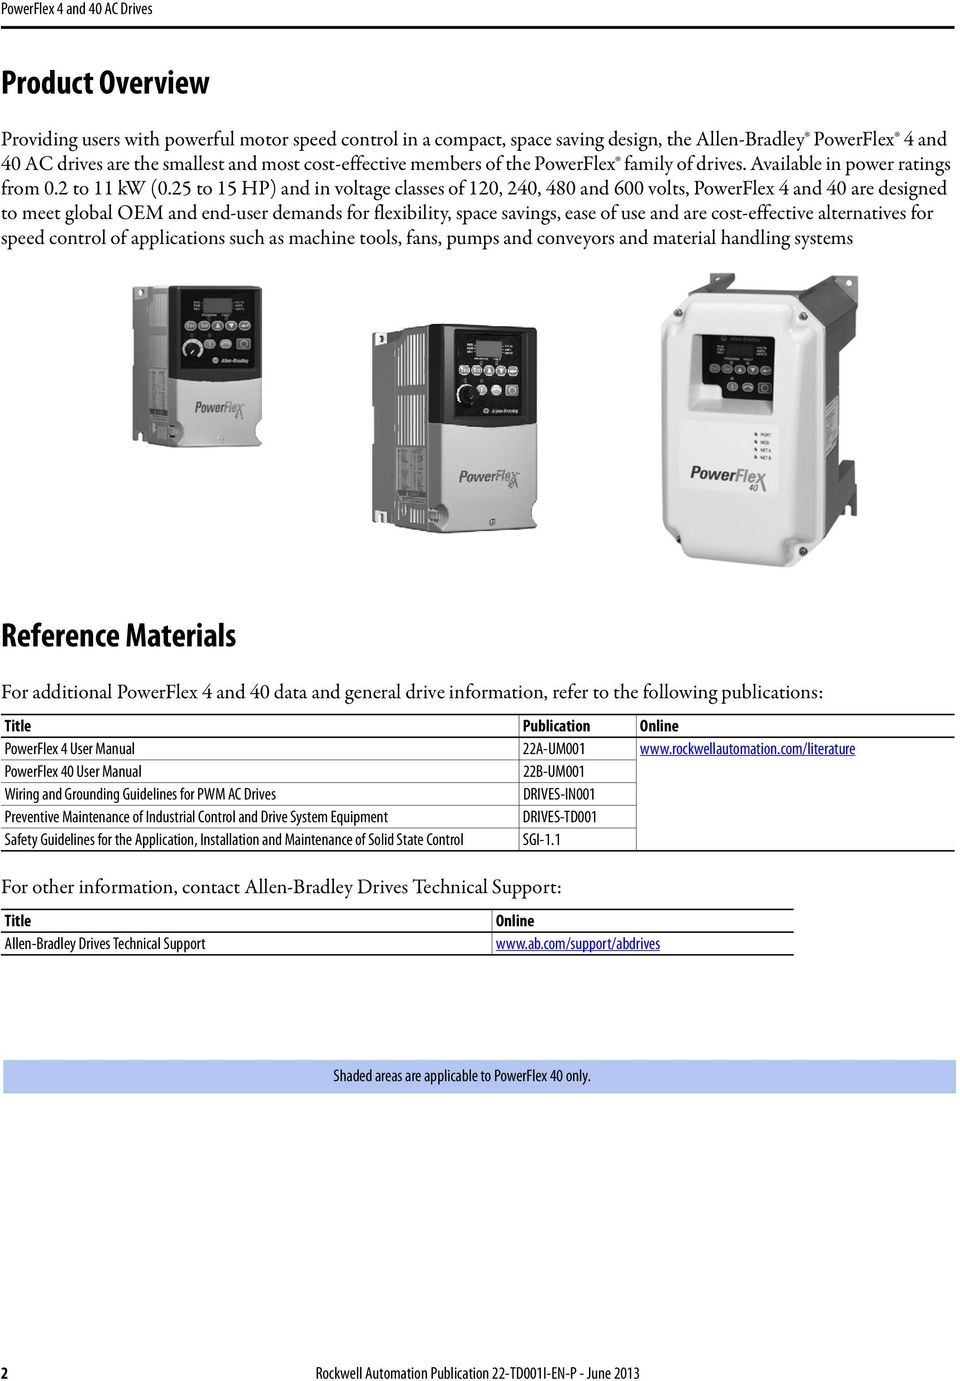 medium resolution of 25 to 15 hp and in voltage classes of 120 240 480 and